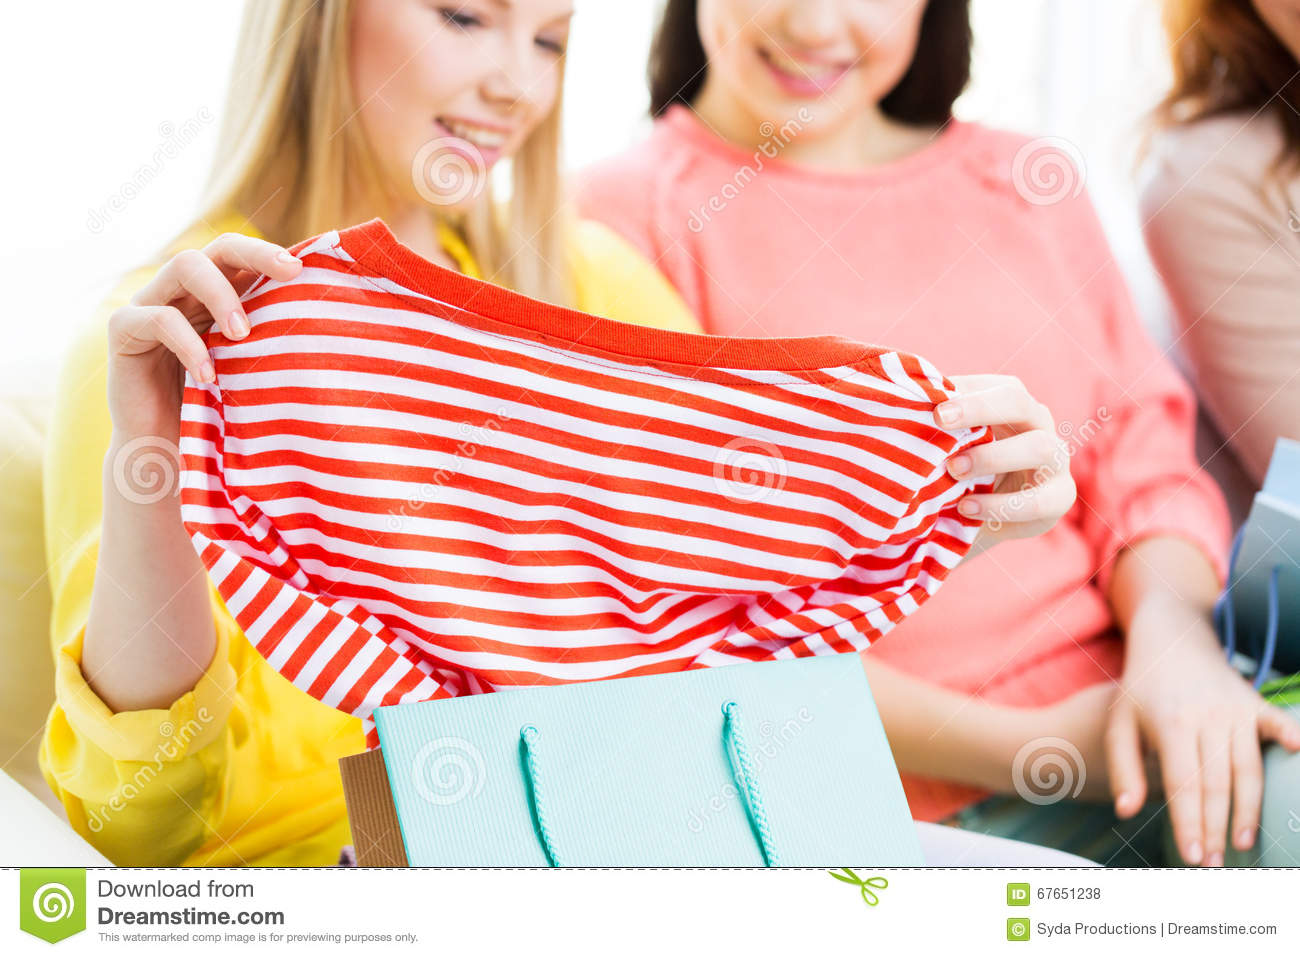 Clothing stores for young adults